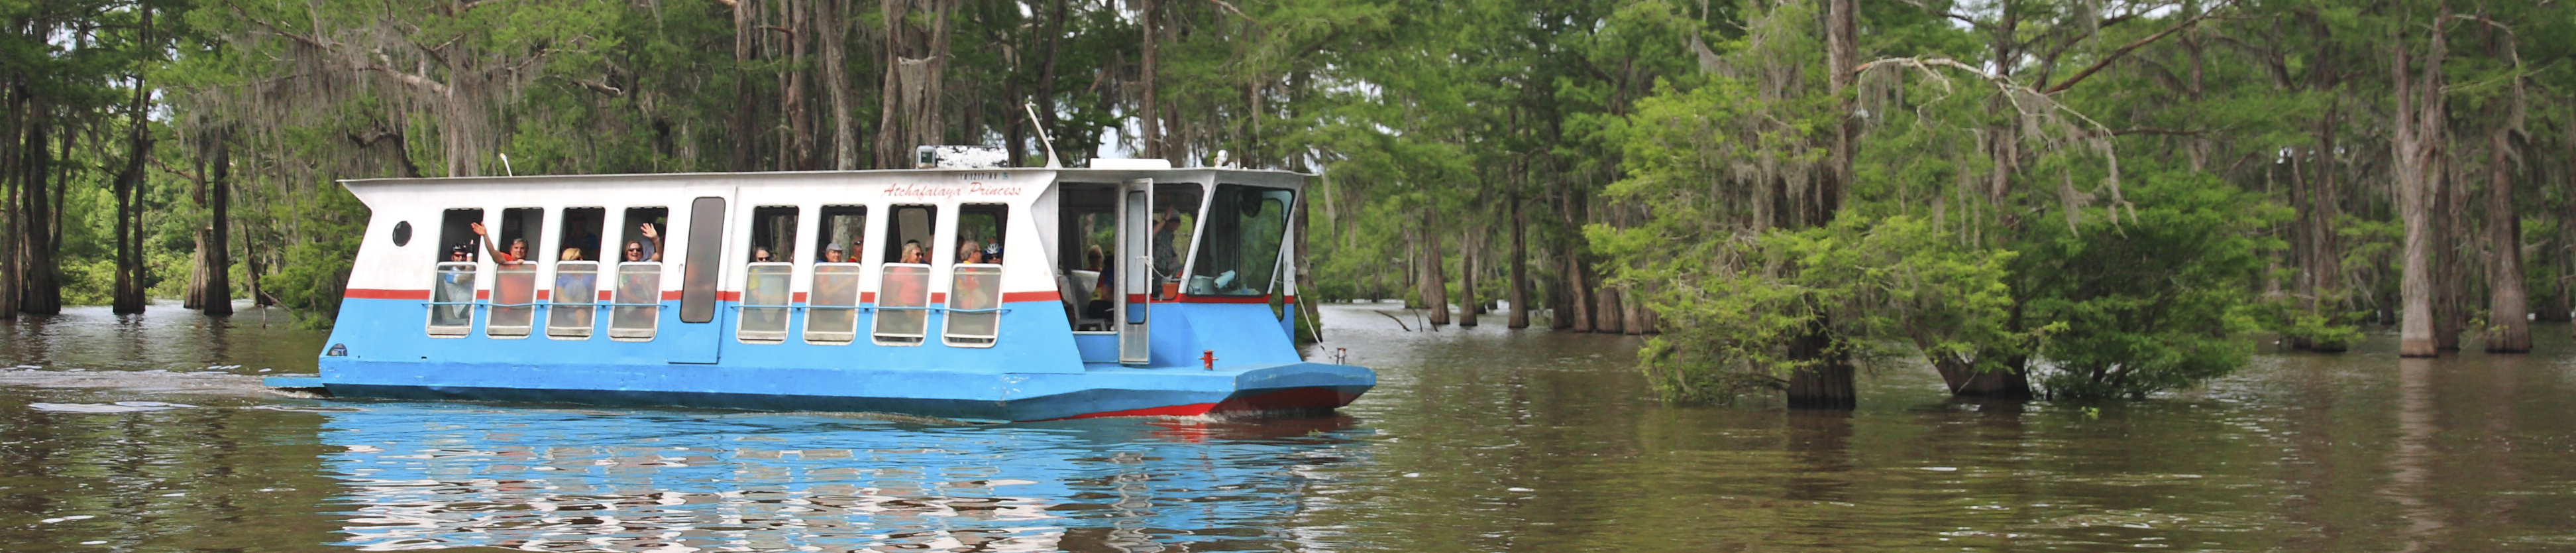 McGee's Louisiana Swamp & Airboat Tours